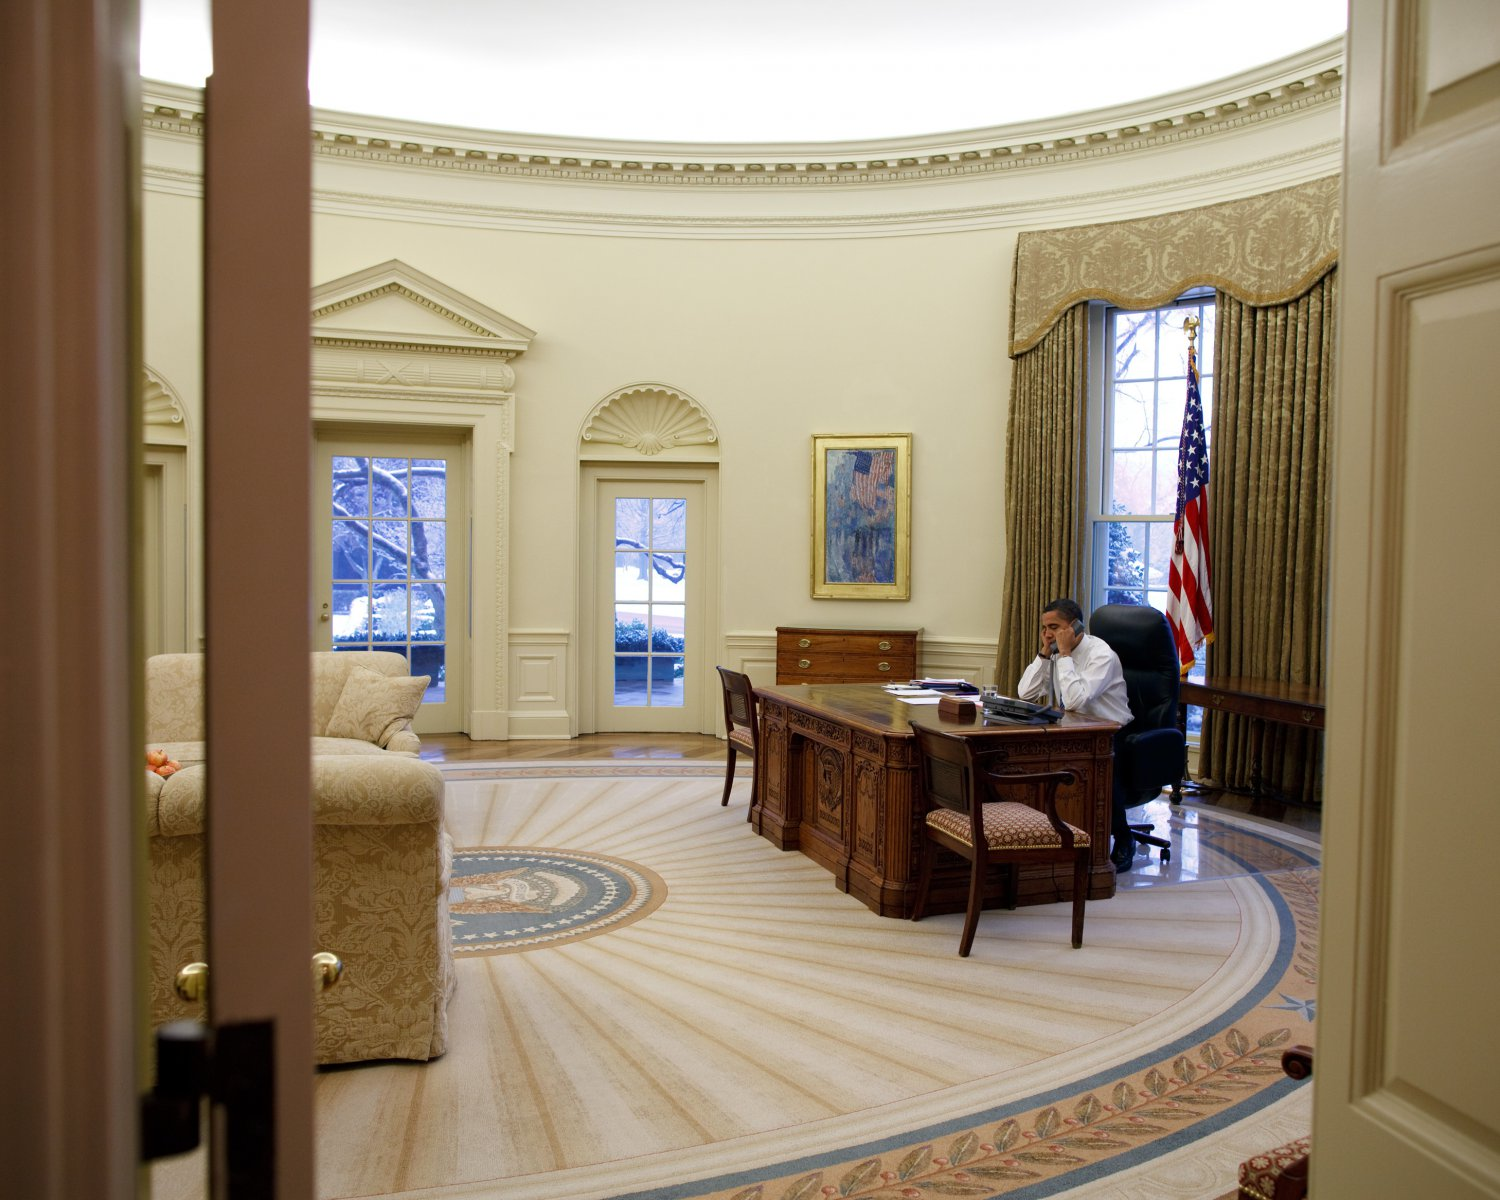 PRESIDENT BARACK OBAMA IN OVAL OFFICE ON JANUARY 28, 2009 - 8X10 PHOTO (ZY-398)